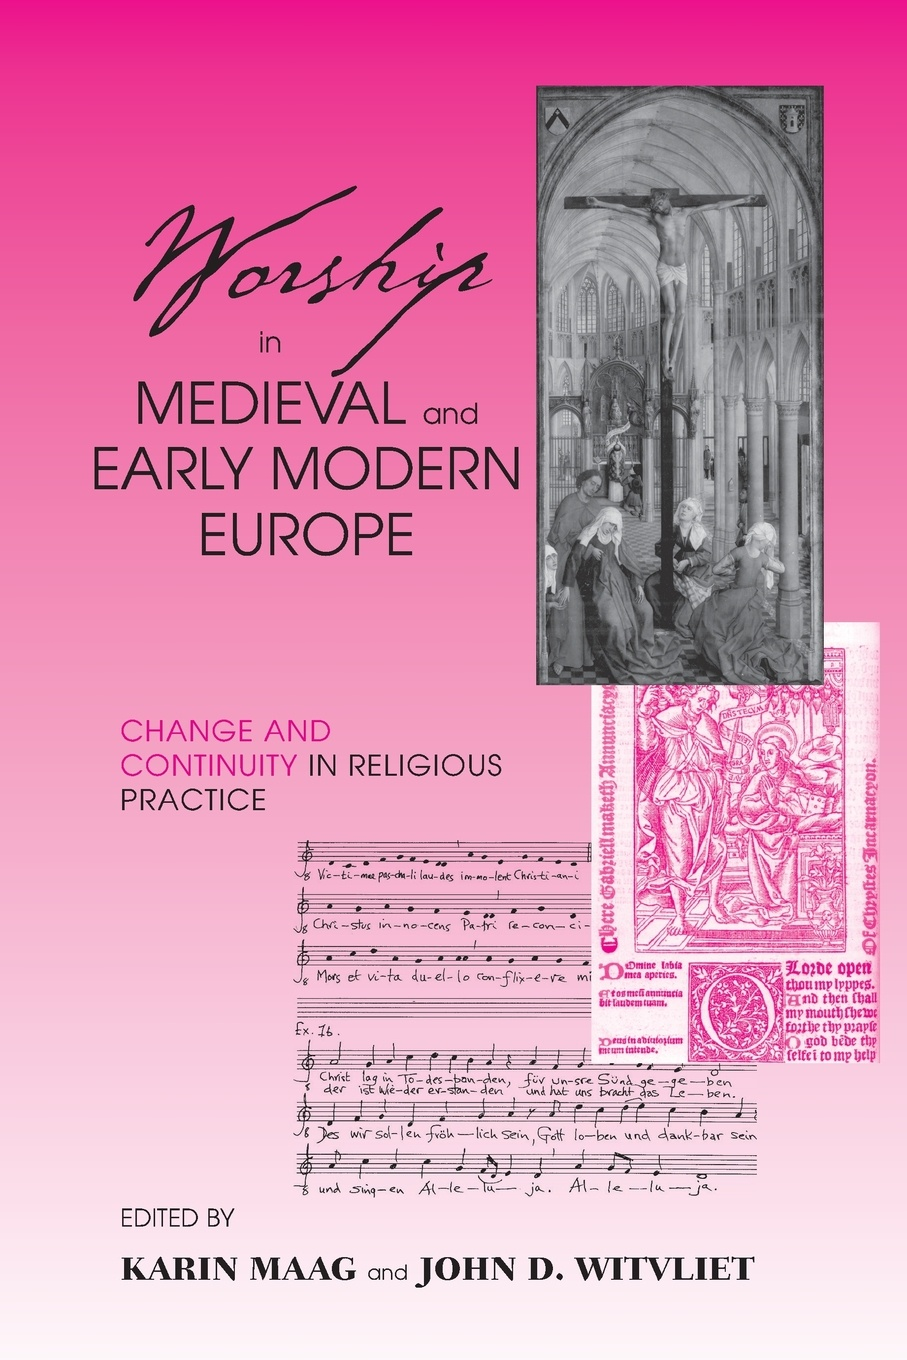 Worship in Medieval and Early Modern Europe. Change and Continuity in Religious Practice.